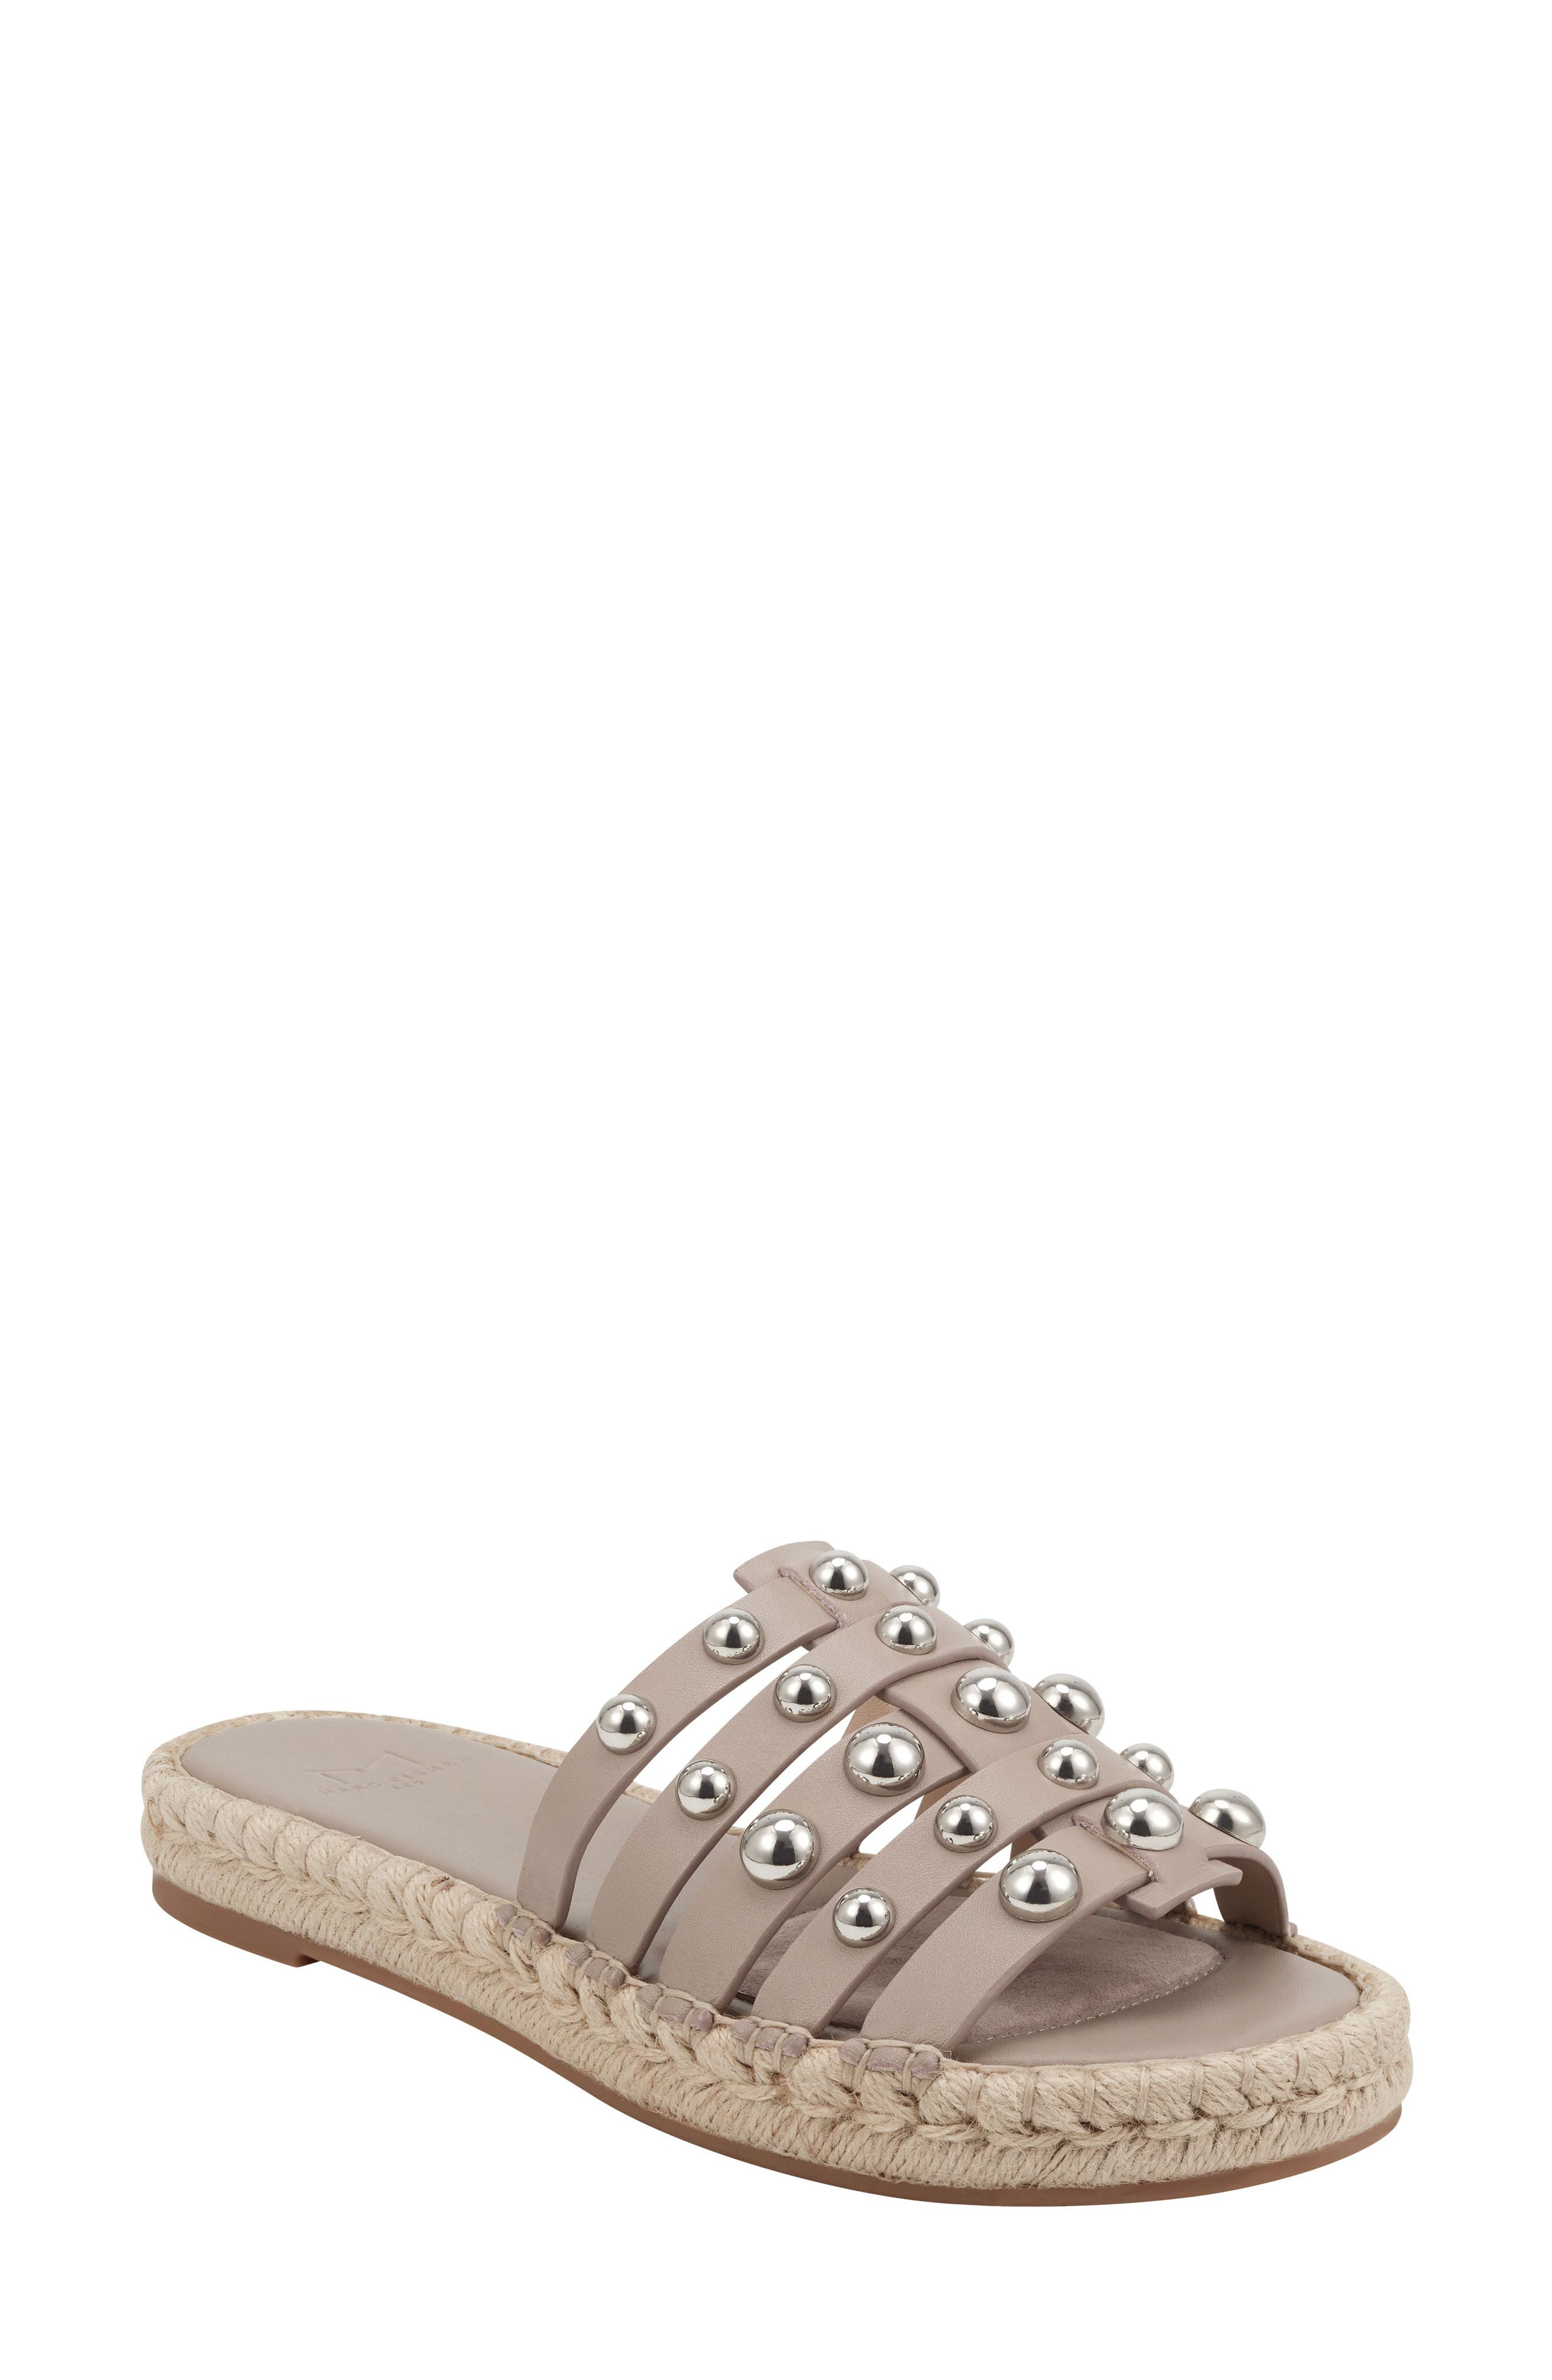 An espadrille-style platform updates an edgy, studded slide sandal with summery appeal. Style Name: Marc Fisher Ltd Tamie Espadrille Slide Sandal (Women). Style Number: 6003485. Available in stores.